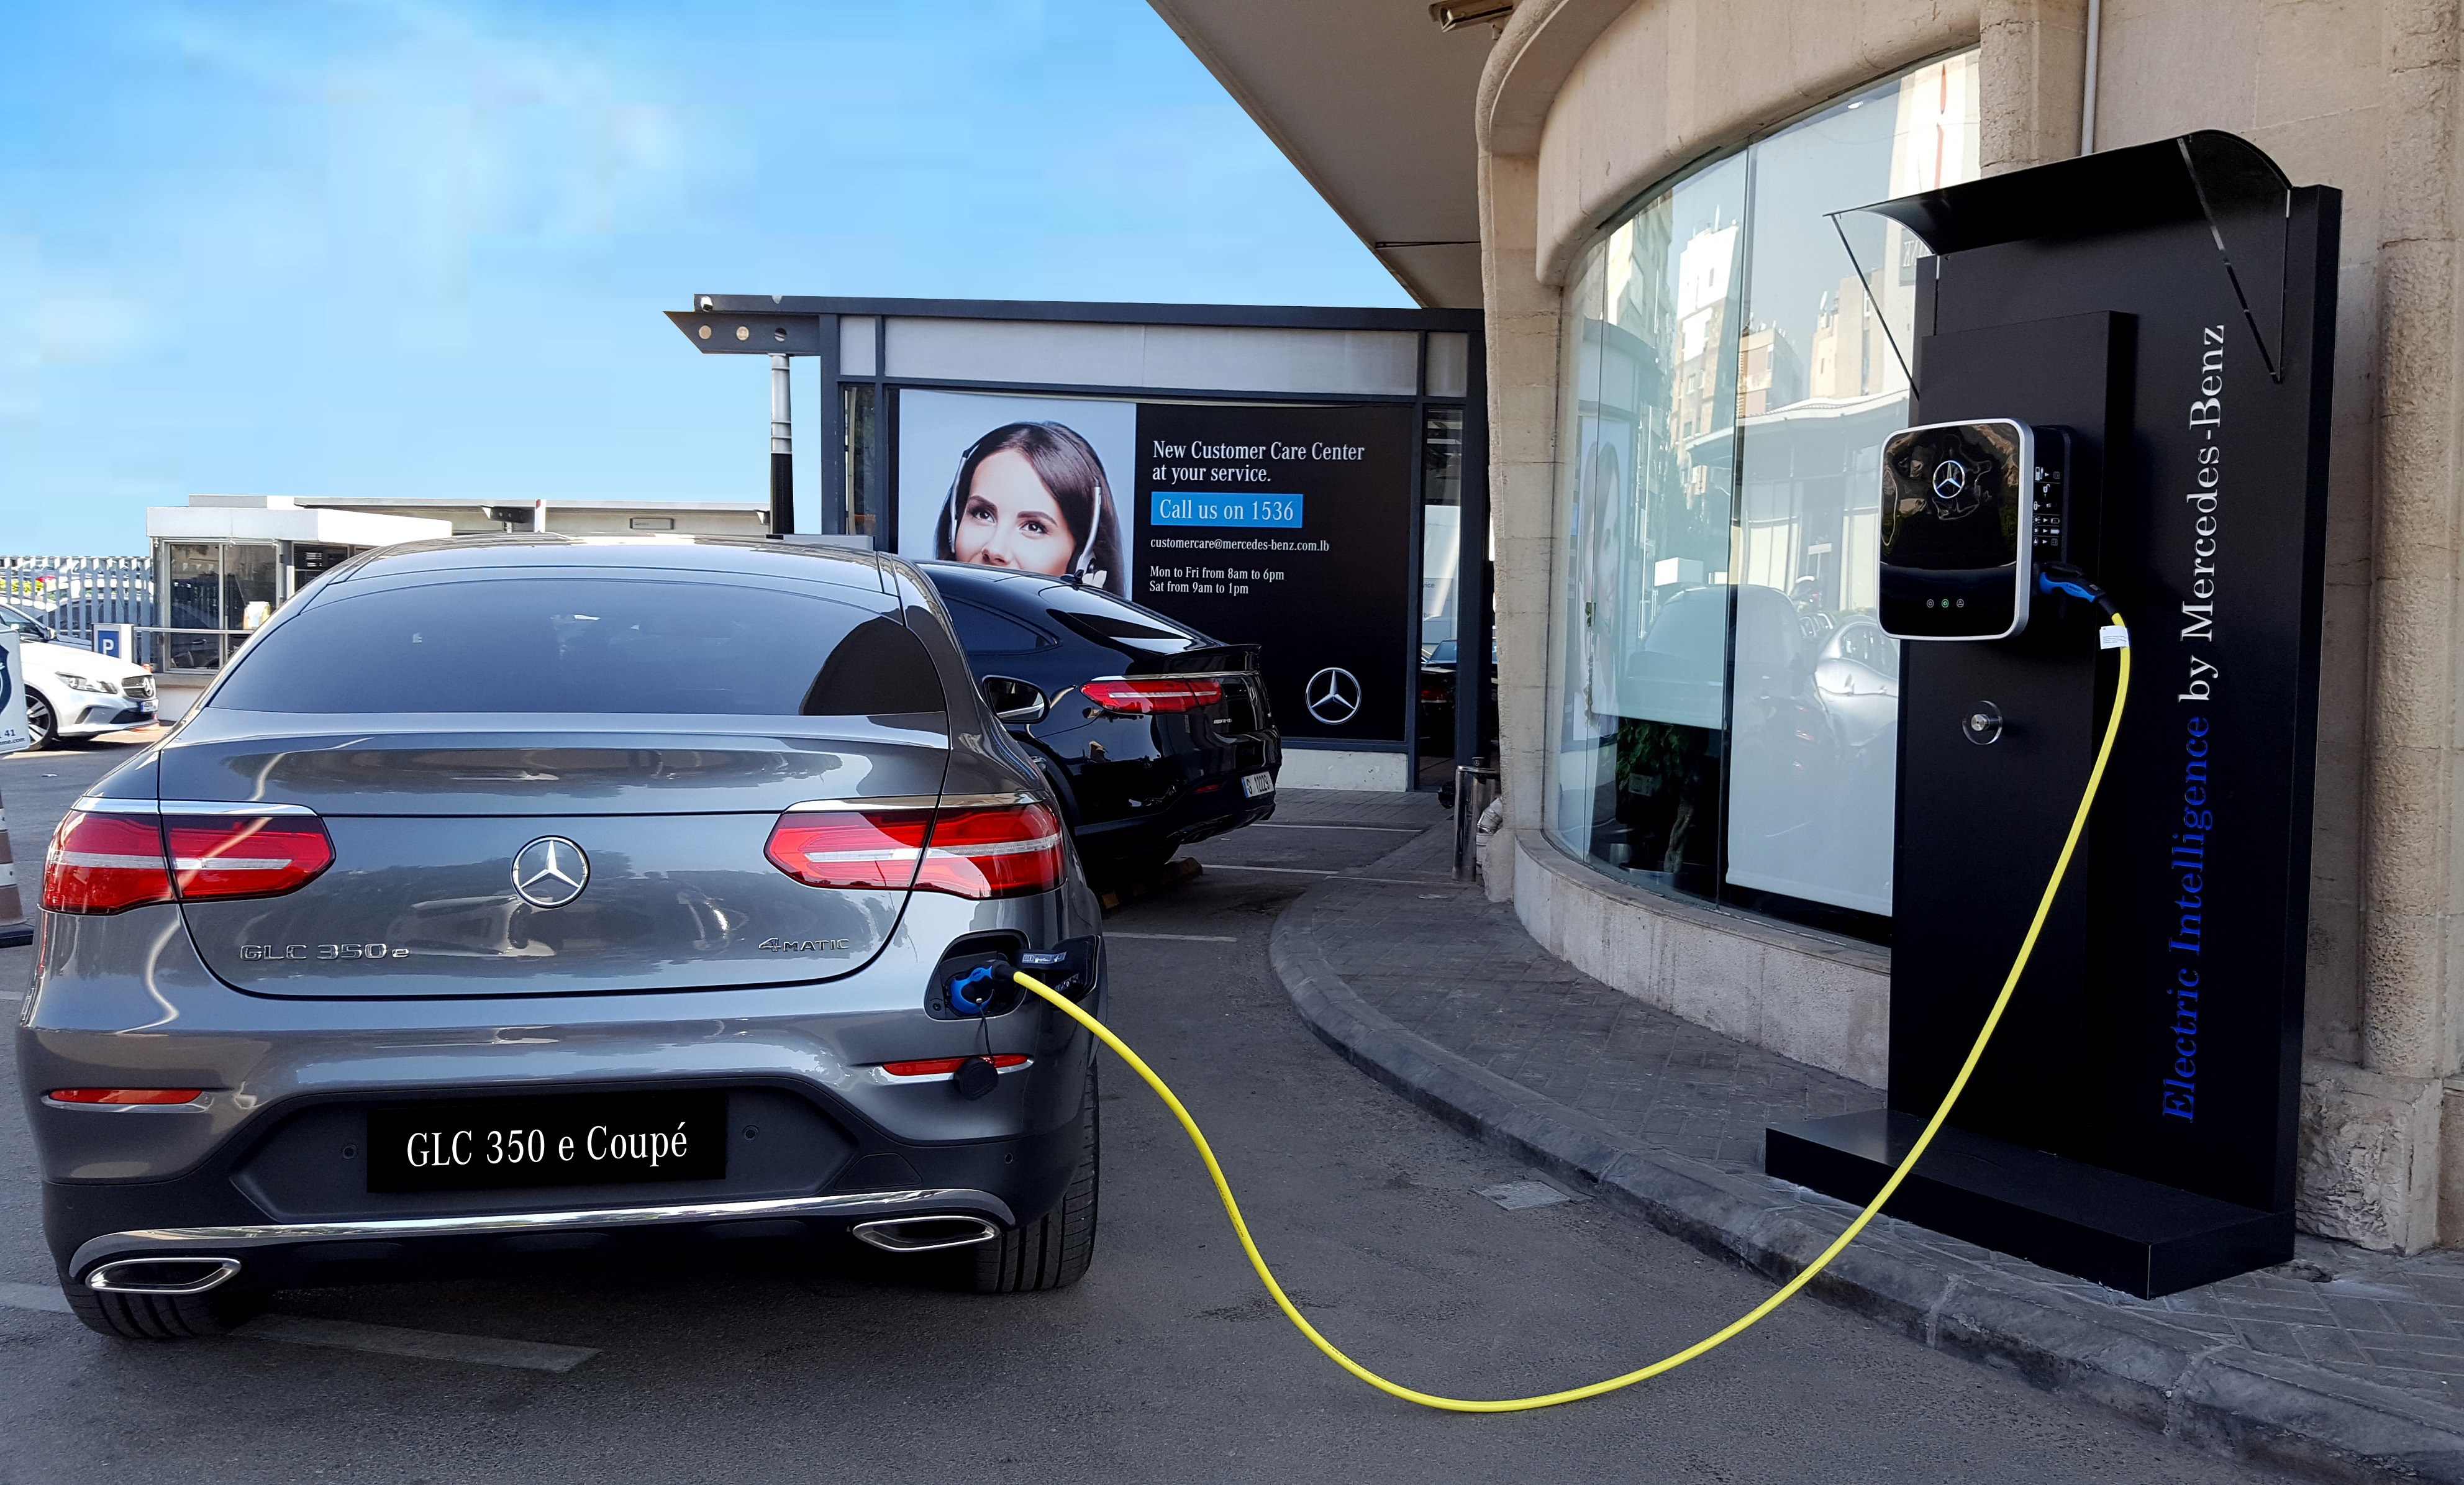 The Mercedes Benz Electric Vision Symbolize An Electric Future And Hold  Great Significance As They Mean U0027emotion And Intelligenceu0027 U2013 Two Pillars  That Bring ...